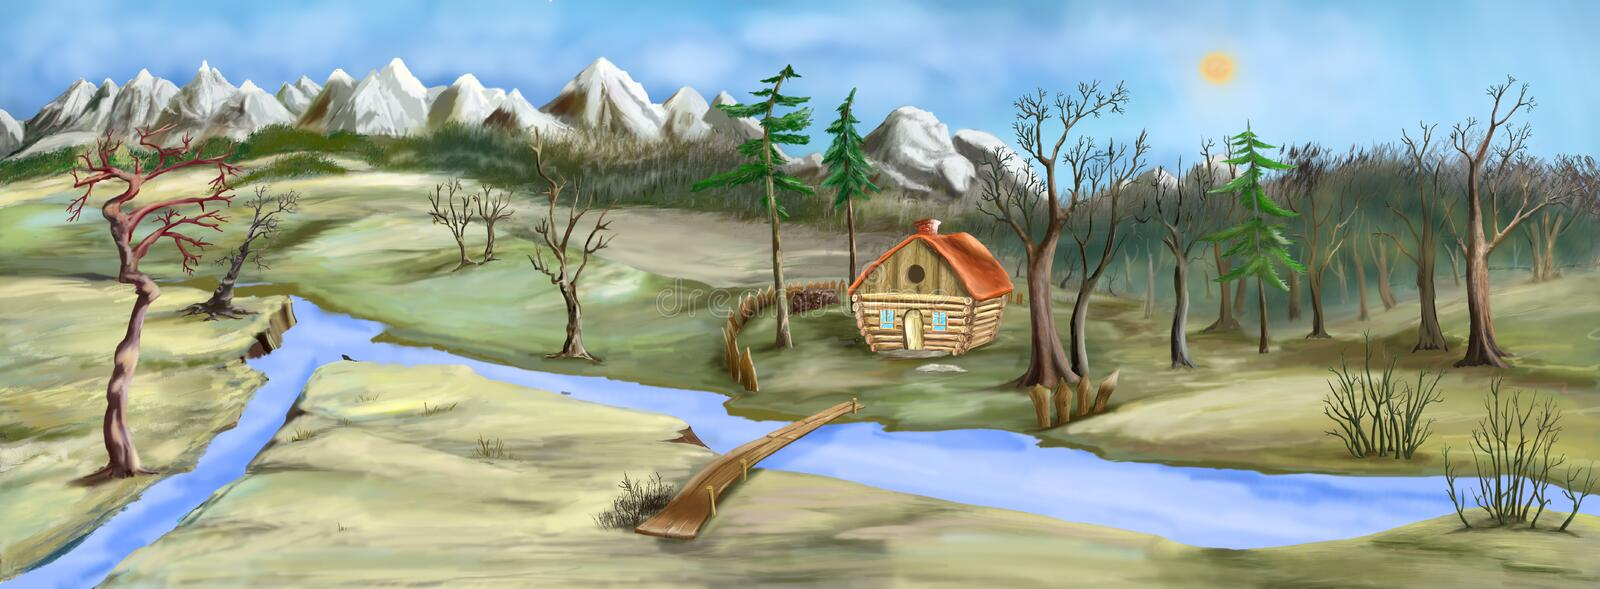 Old House by the River in Late Autumn royalty free illustration